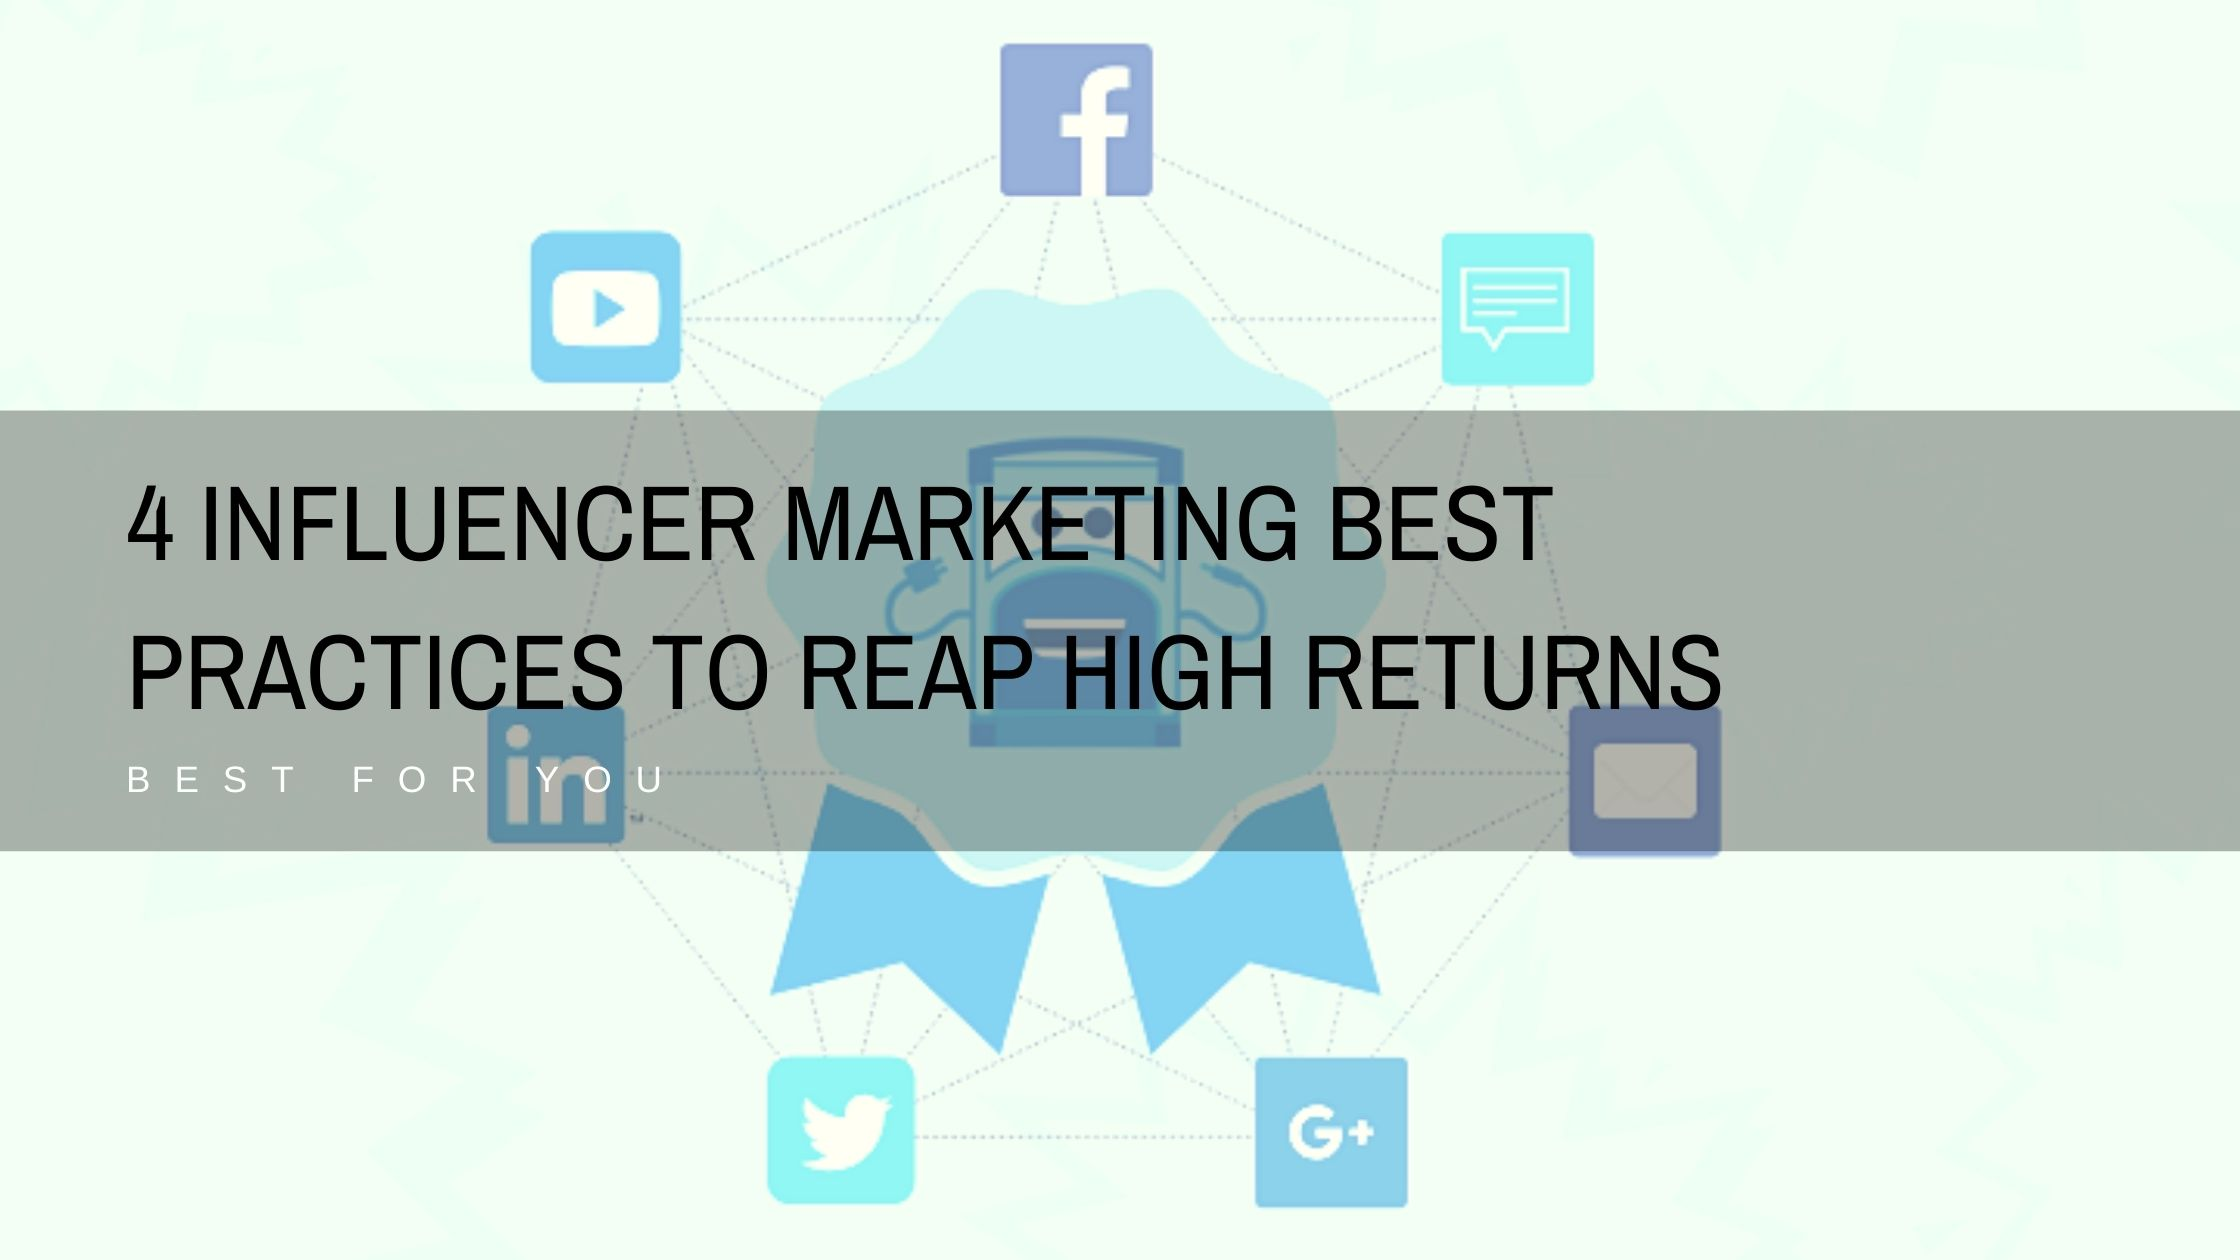 4 Influencer Marketing Best Practices to Reap High Returns in 2020